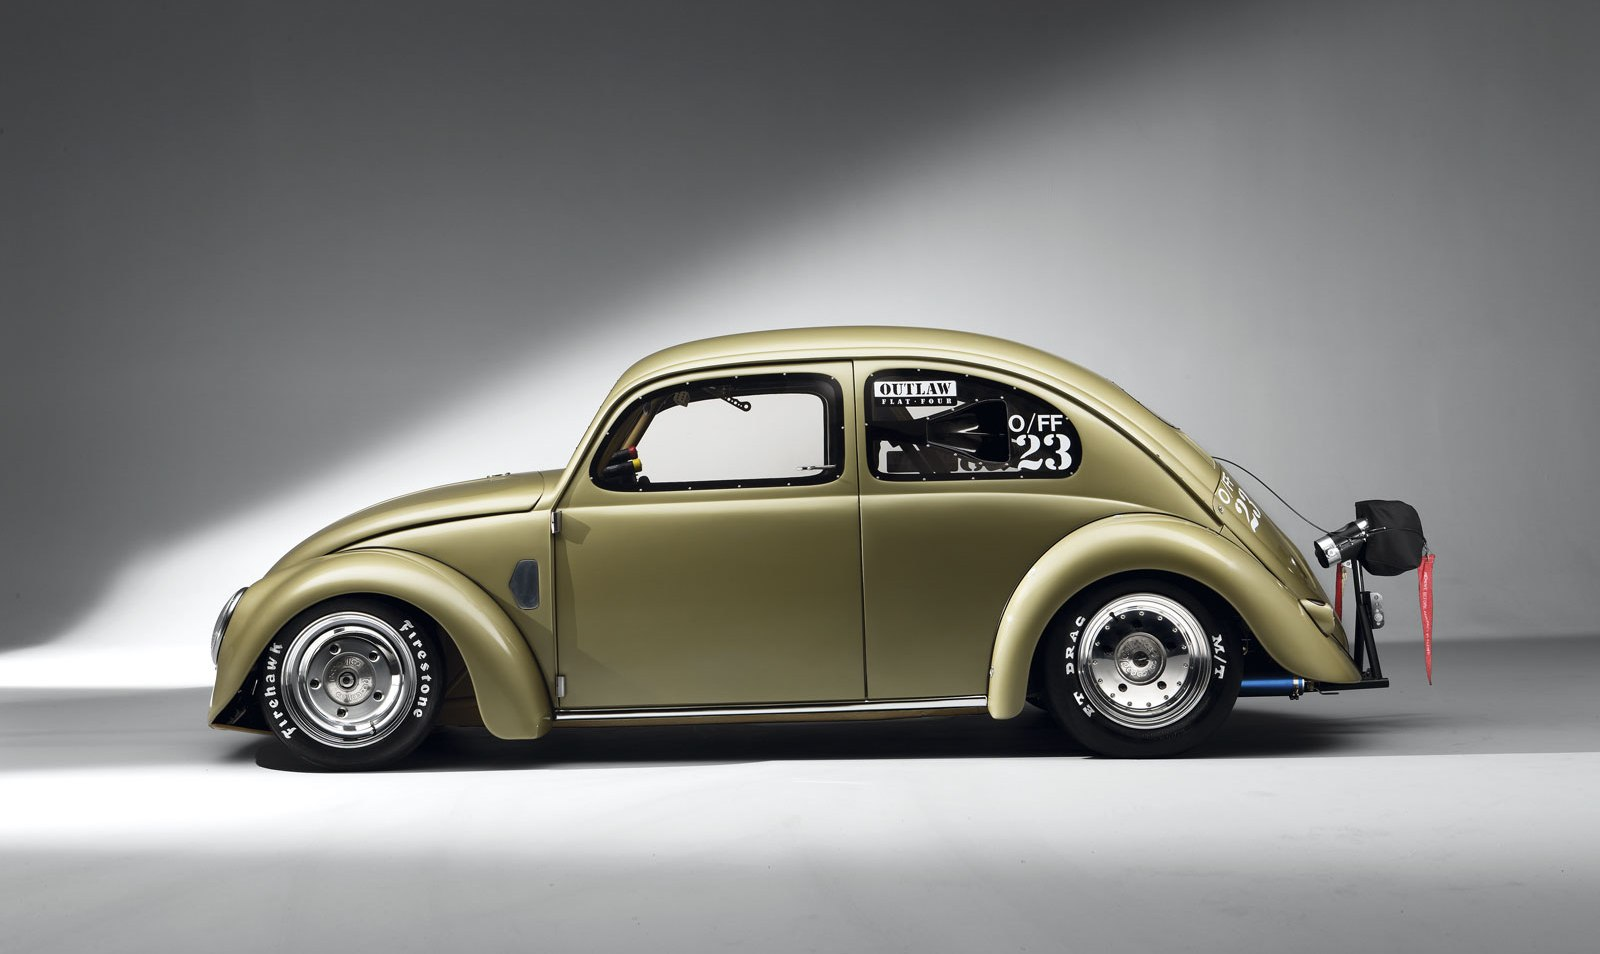 vw beetle wallpaper Volkswagen Beetle Wallpaper Cars Background 1600x954